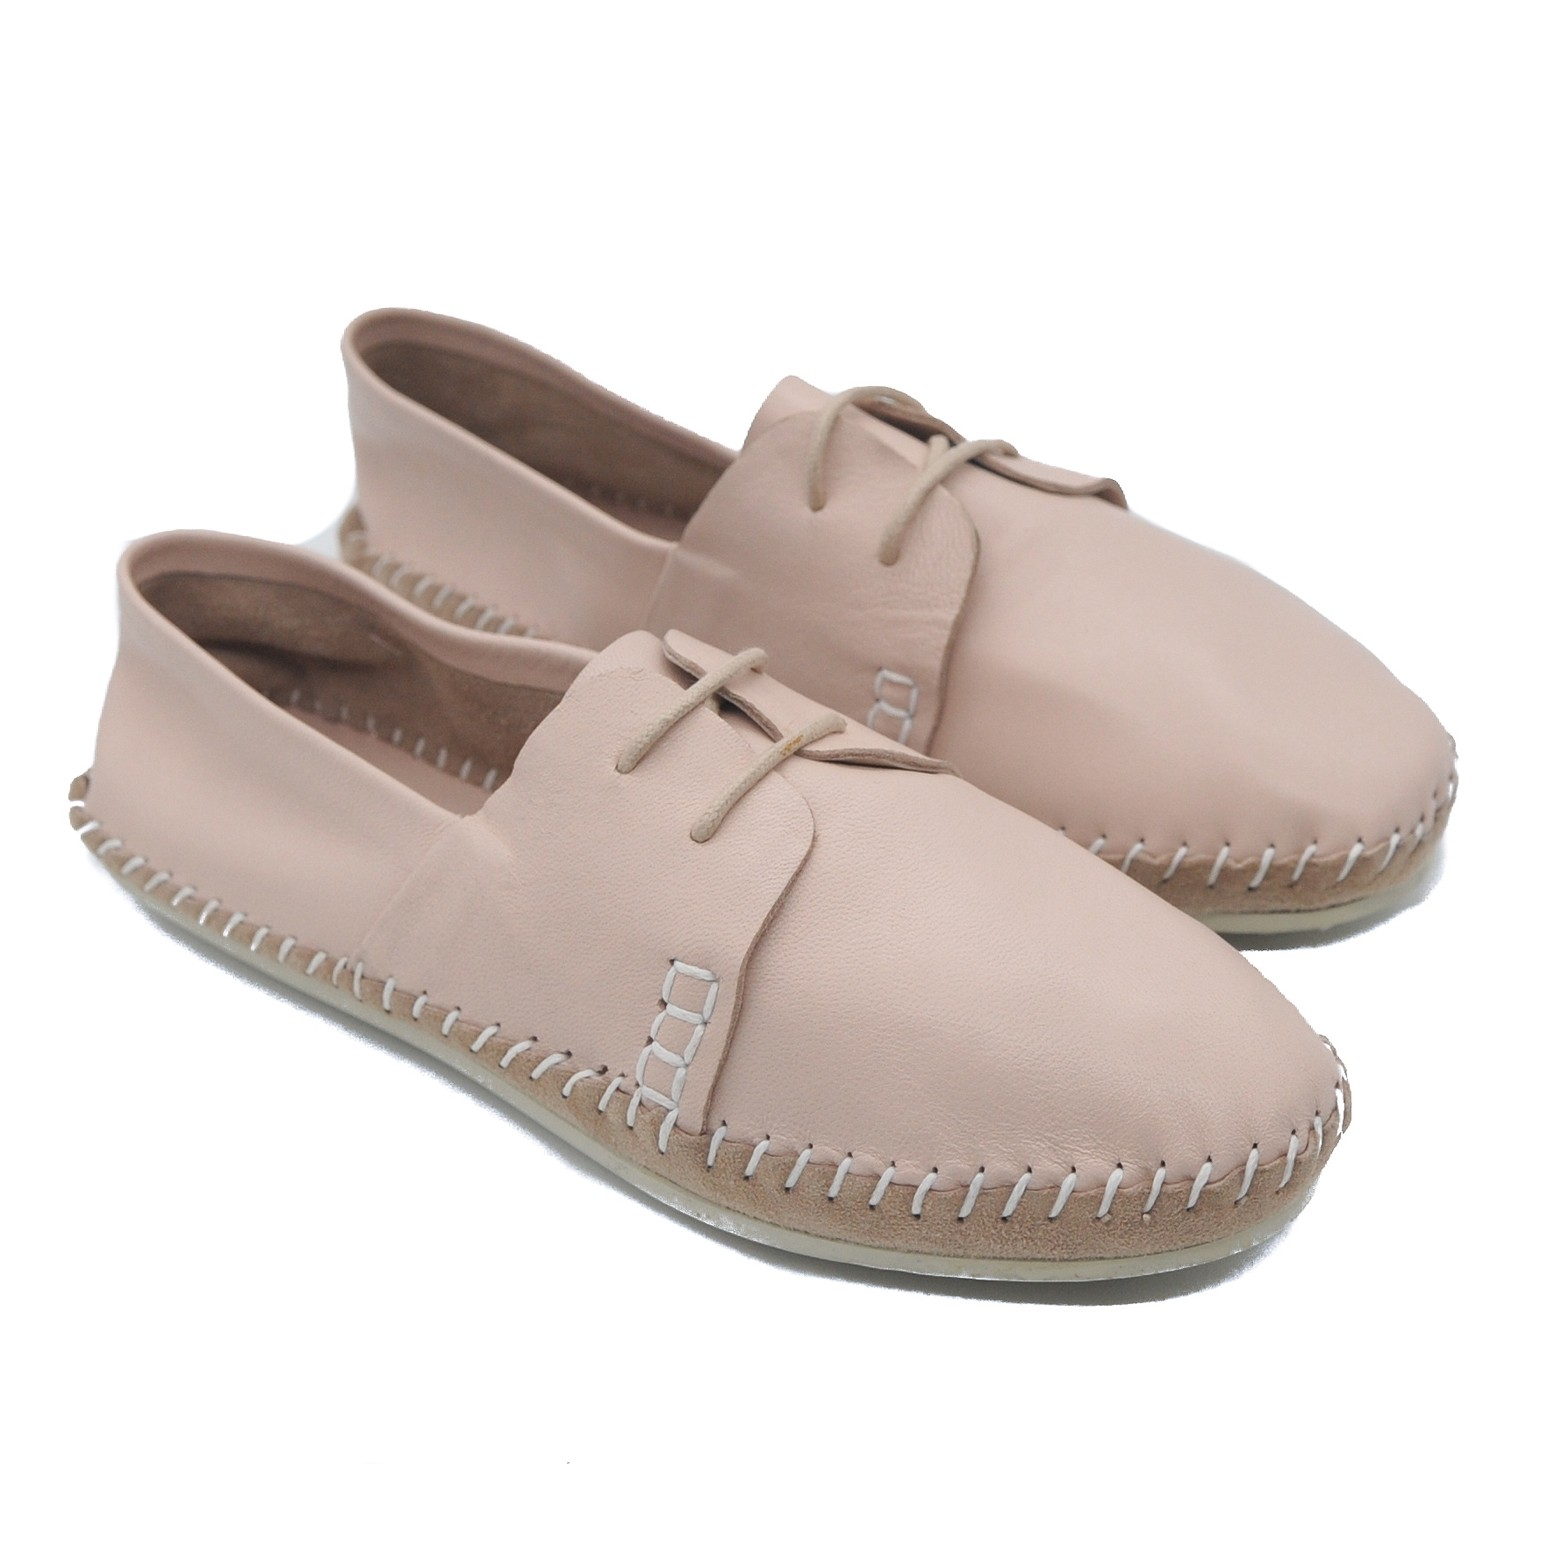 Pegia Art Goya Ladies' Comfort Pink Flat Soft Leather Shoes